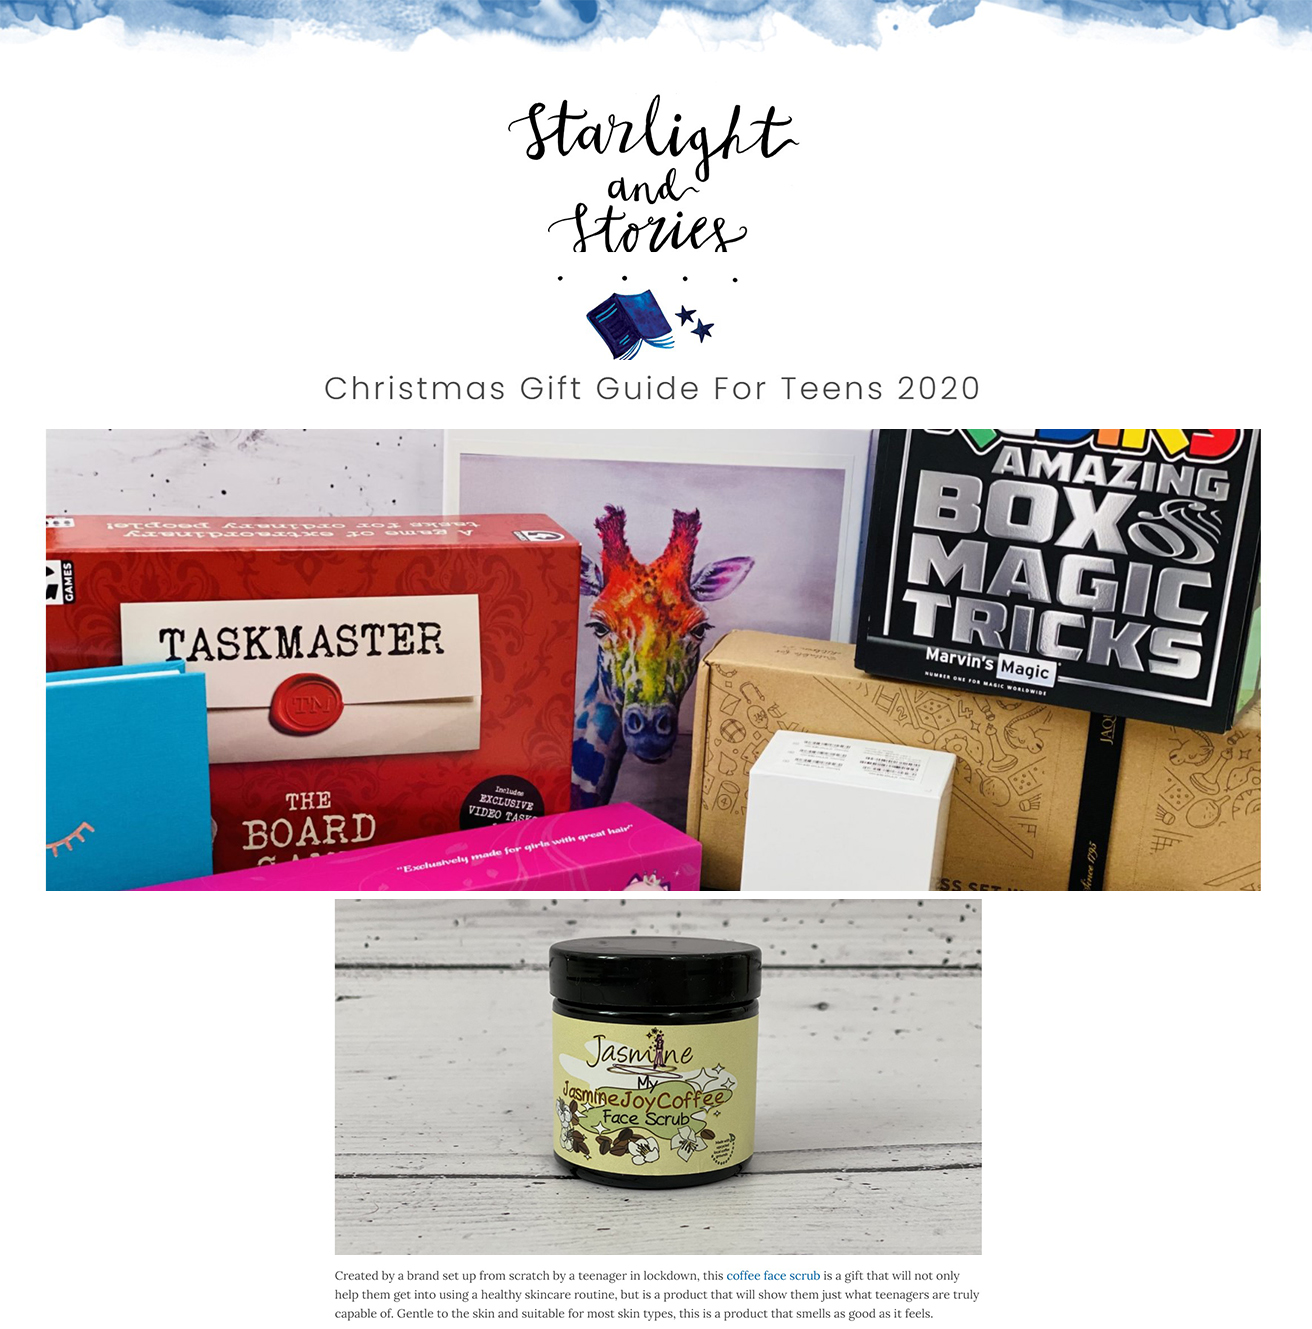 Starlights and Stories - Christmas Gift Guide for Teens